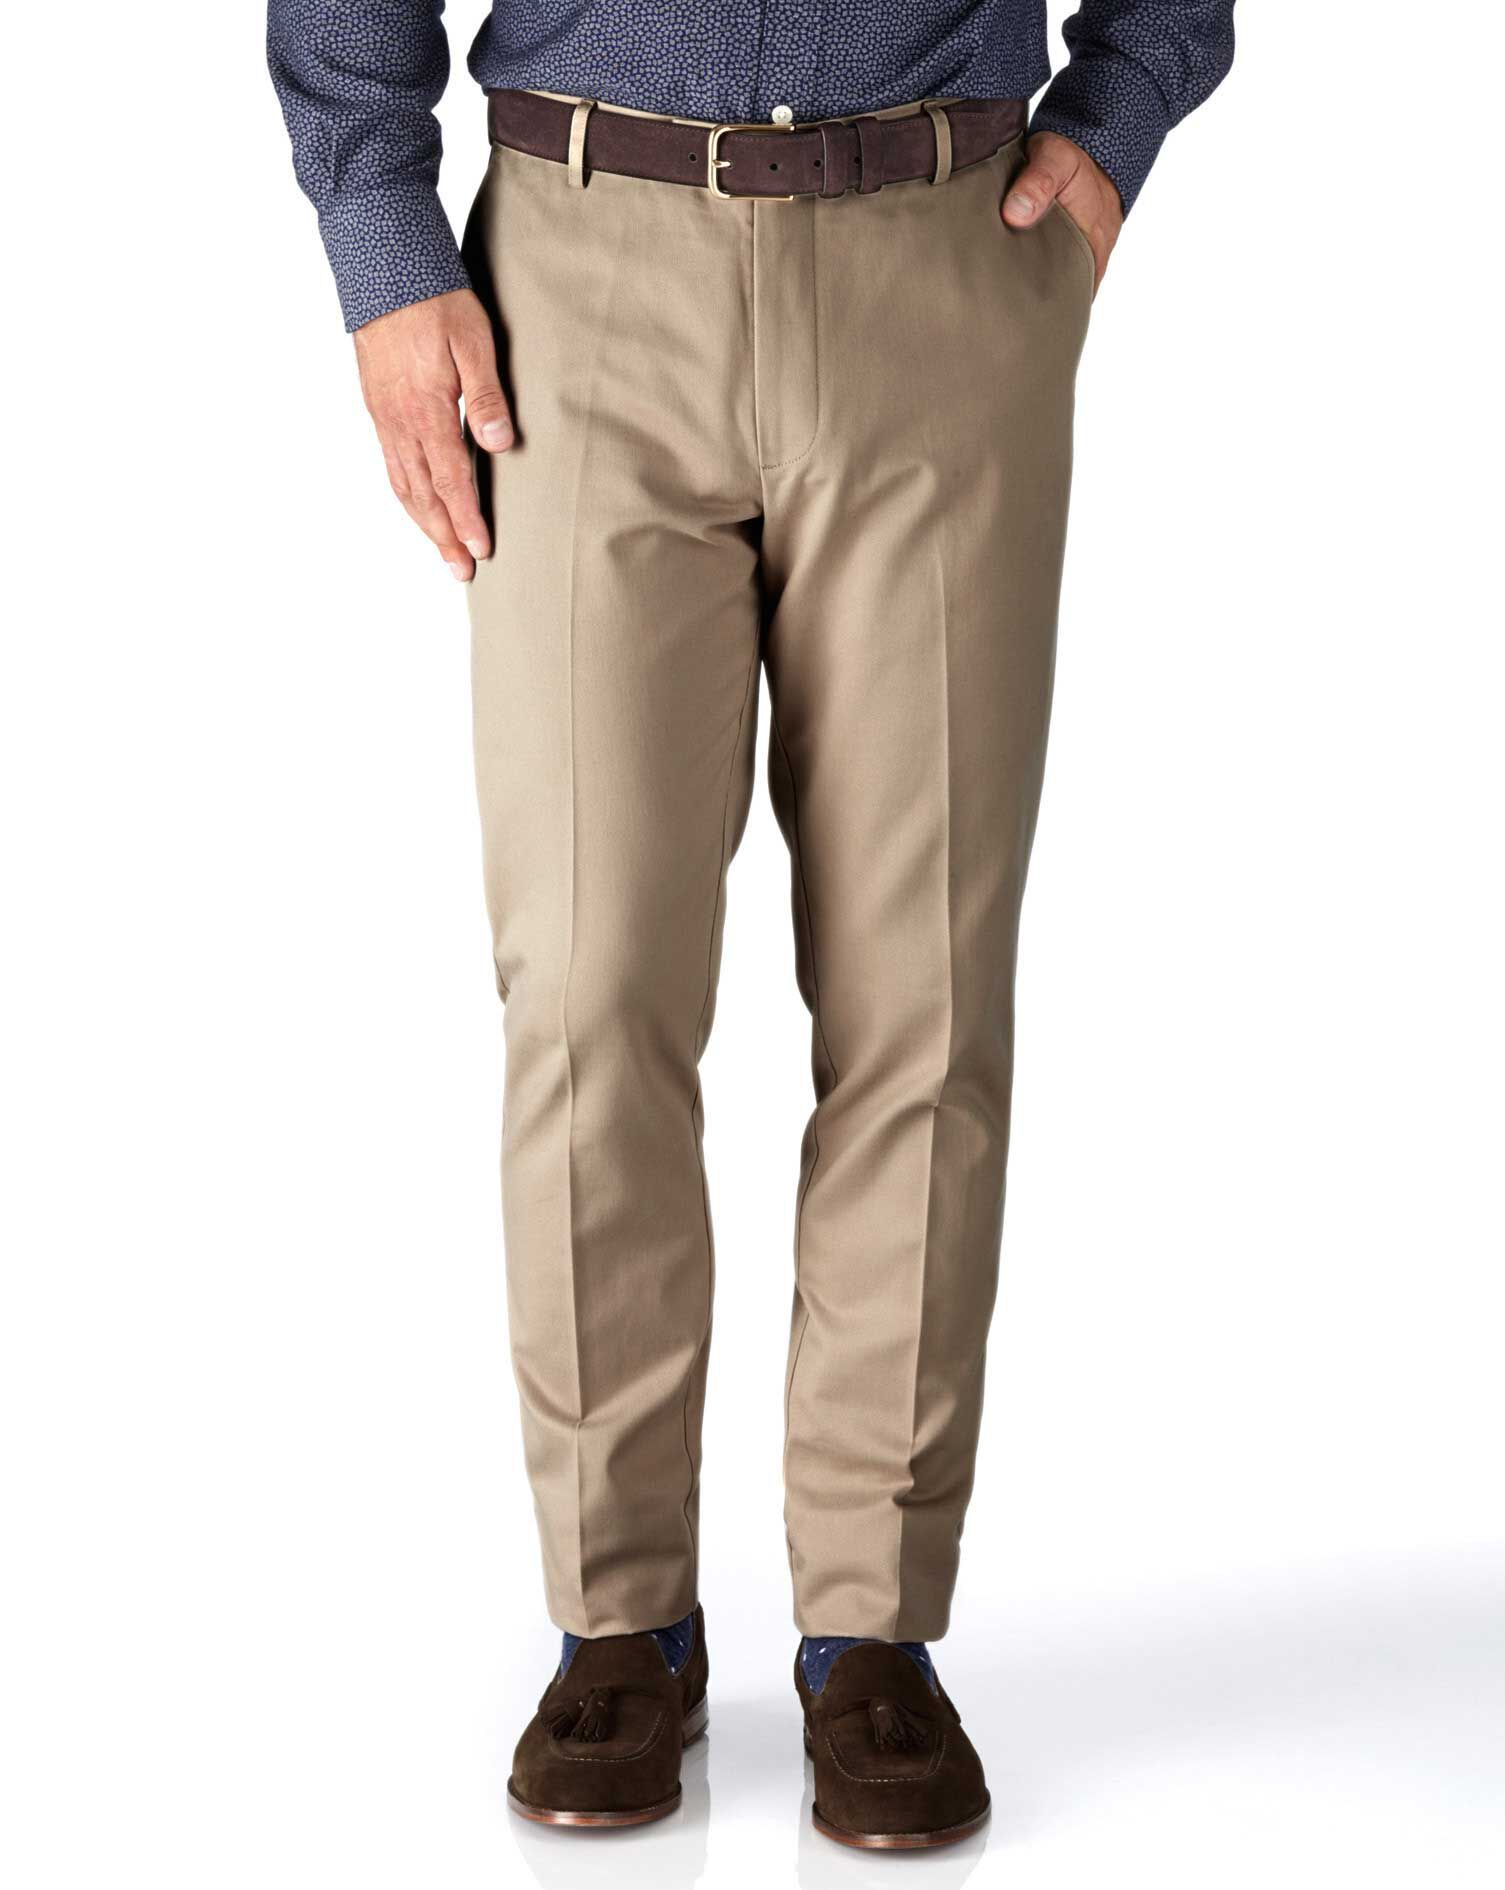 Stone Slim Fit Flat Front Non-Iron Cotton Chino Trousers Size W36 L32 by Charles Tyrwhitt